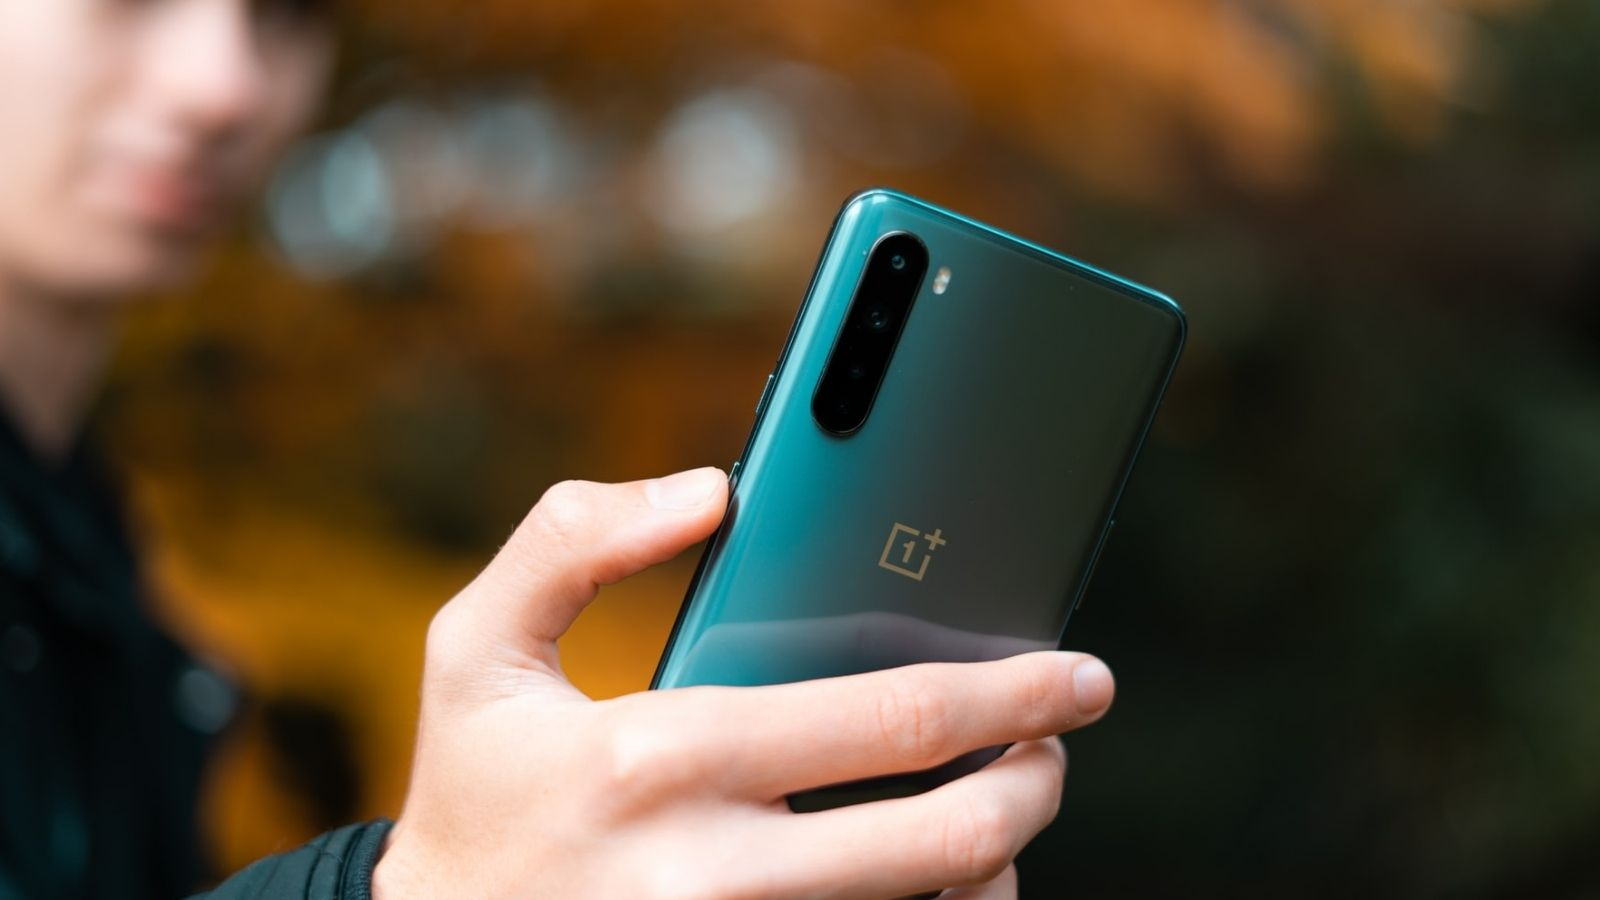 A OnePlus Mobile User